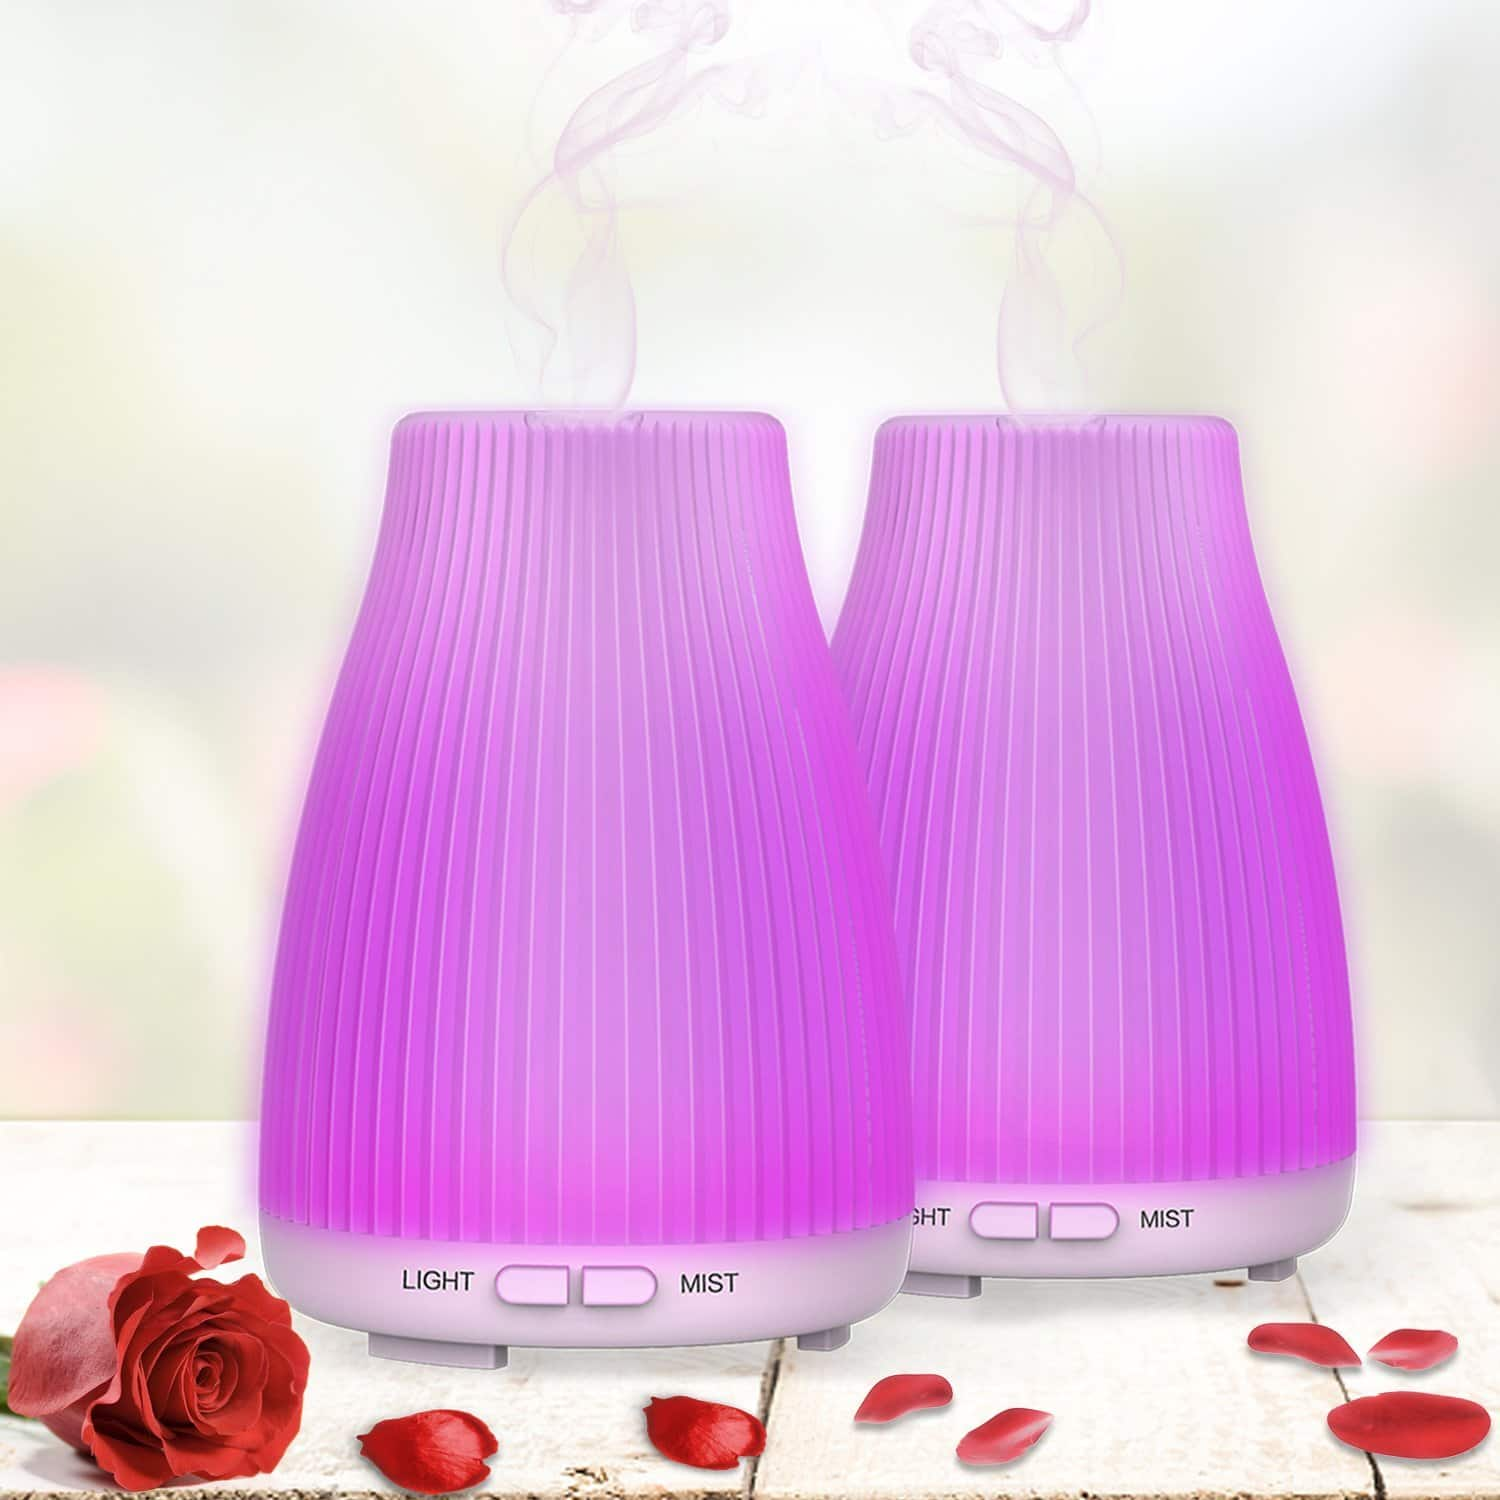 2-Pack Neloodony 100mL Cool Mist Ultrasonic Essential Oil Diffuser $11.99 @ Amazon